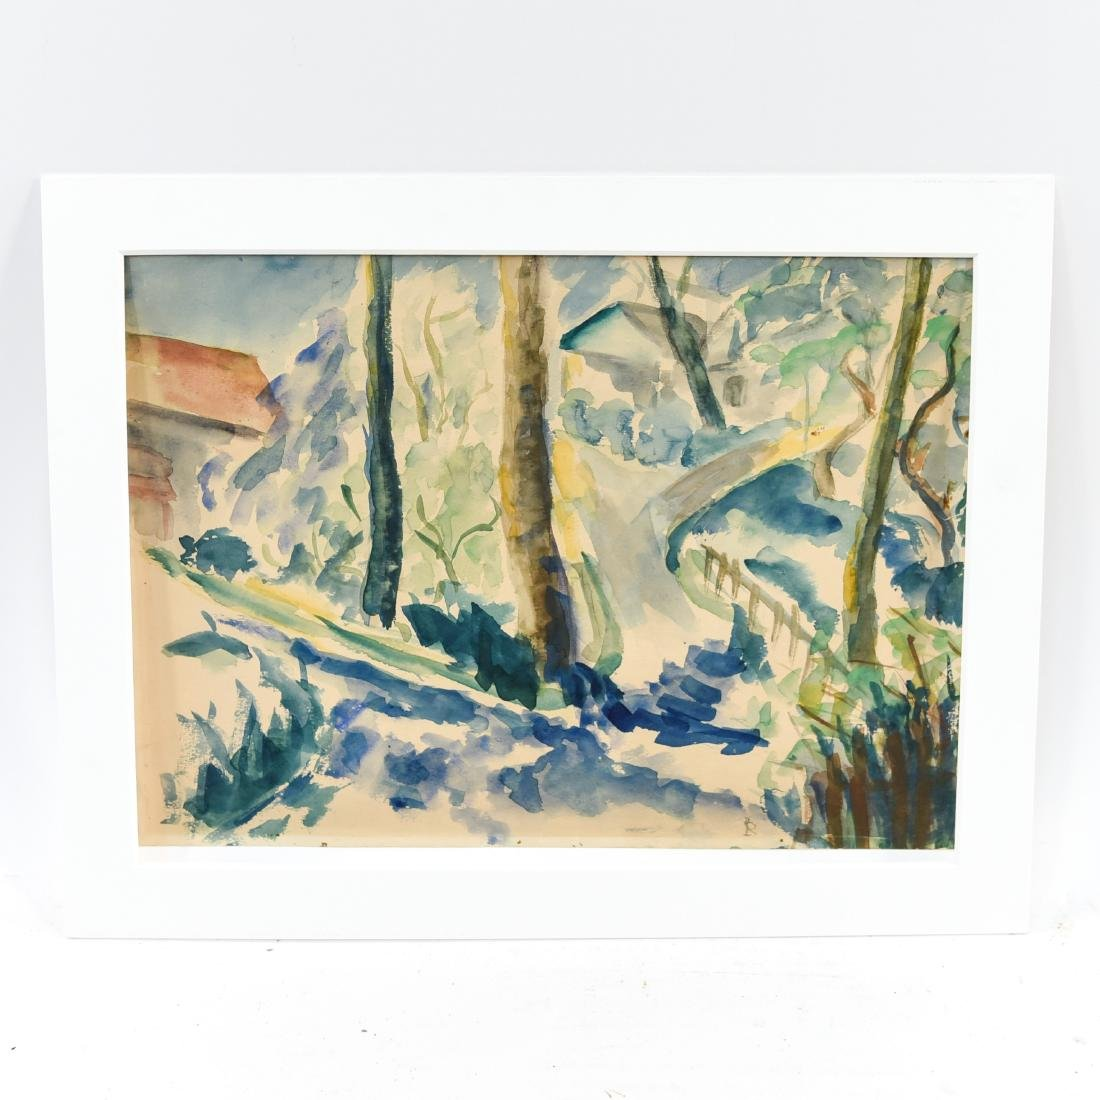 EARLY 20TH C. WATERCOLOR LANDSCAPE